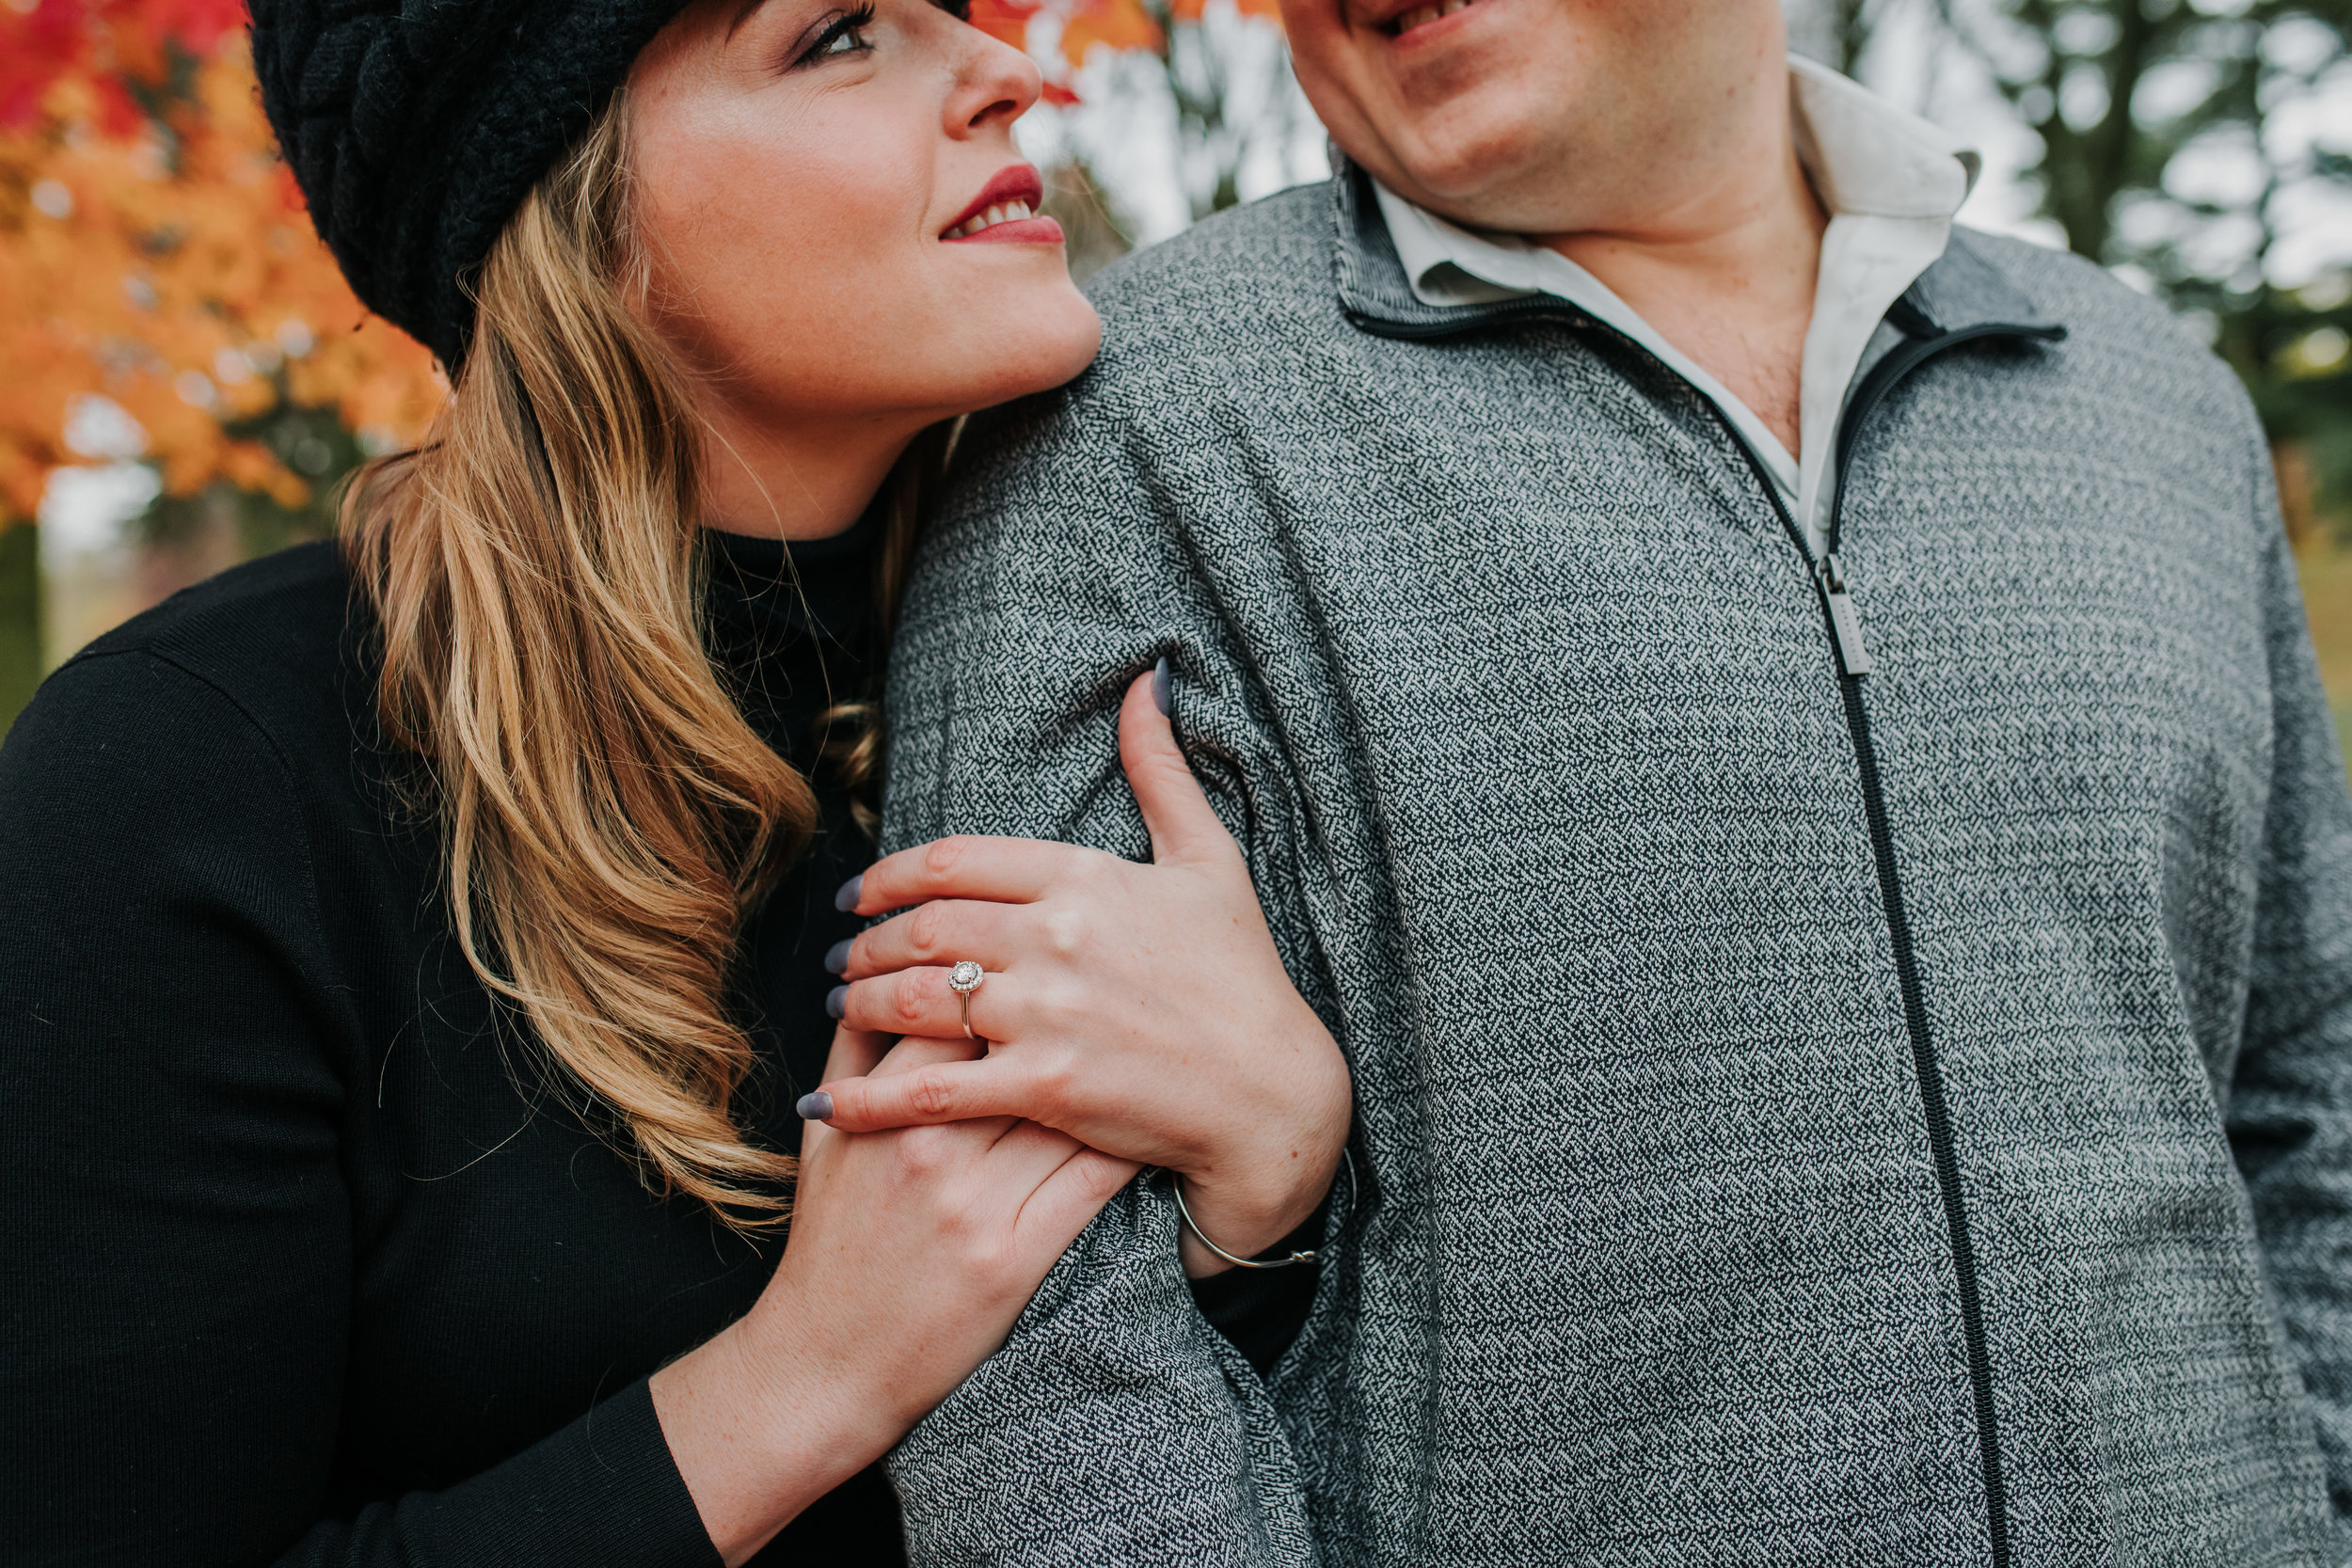 Meghan & Igor - Engaged - Nathaniel Jensen Photography - Omaha Nebraska Wedding Photograper-44.jpg